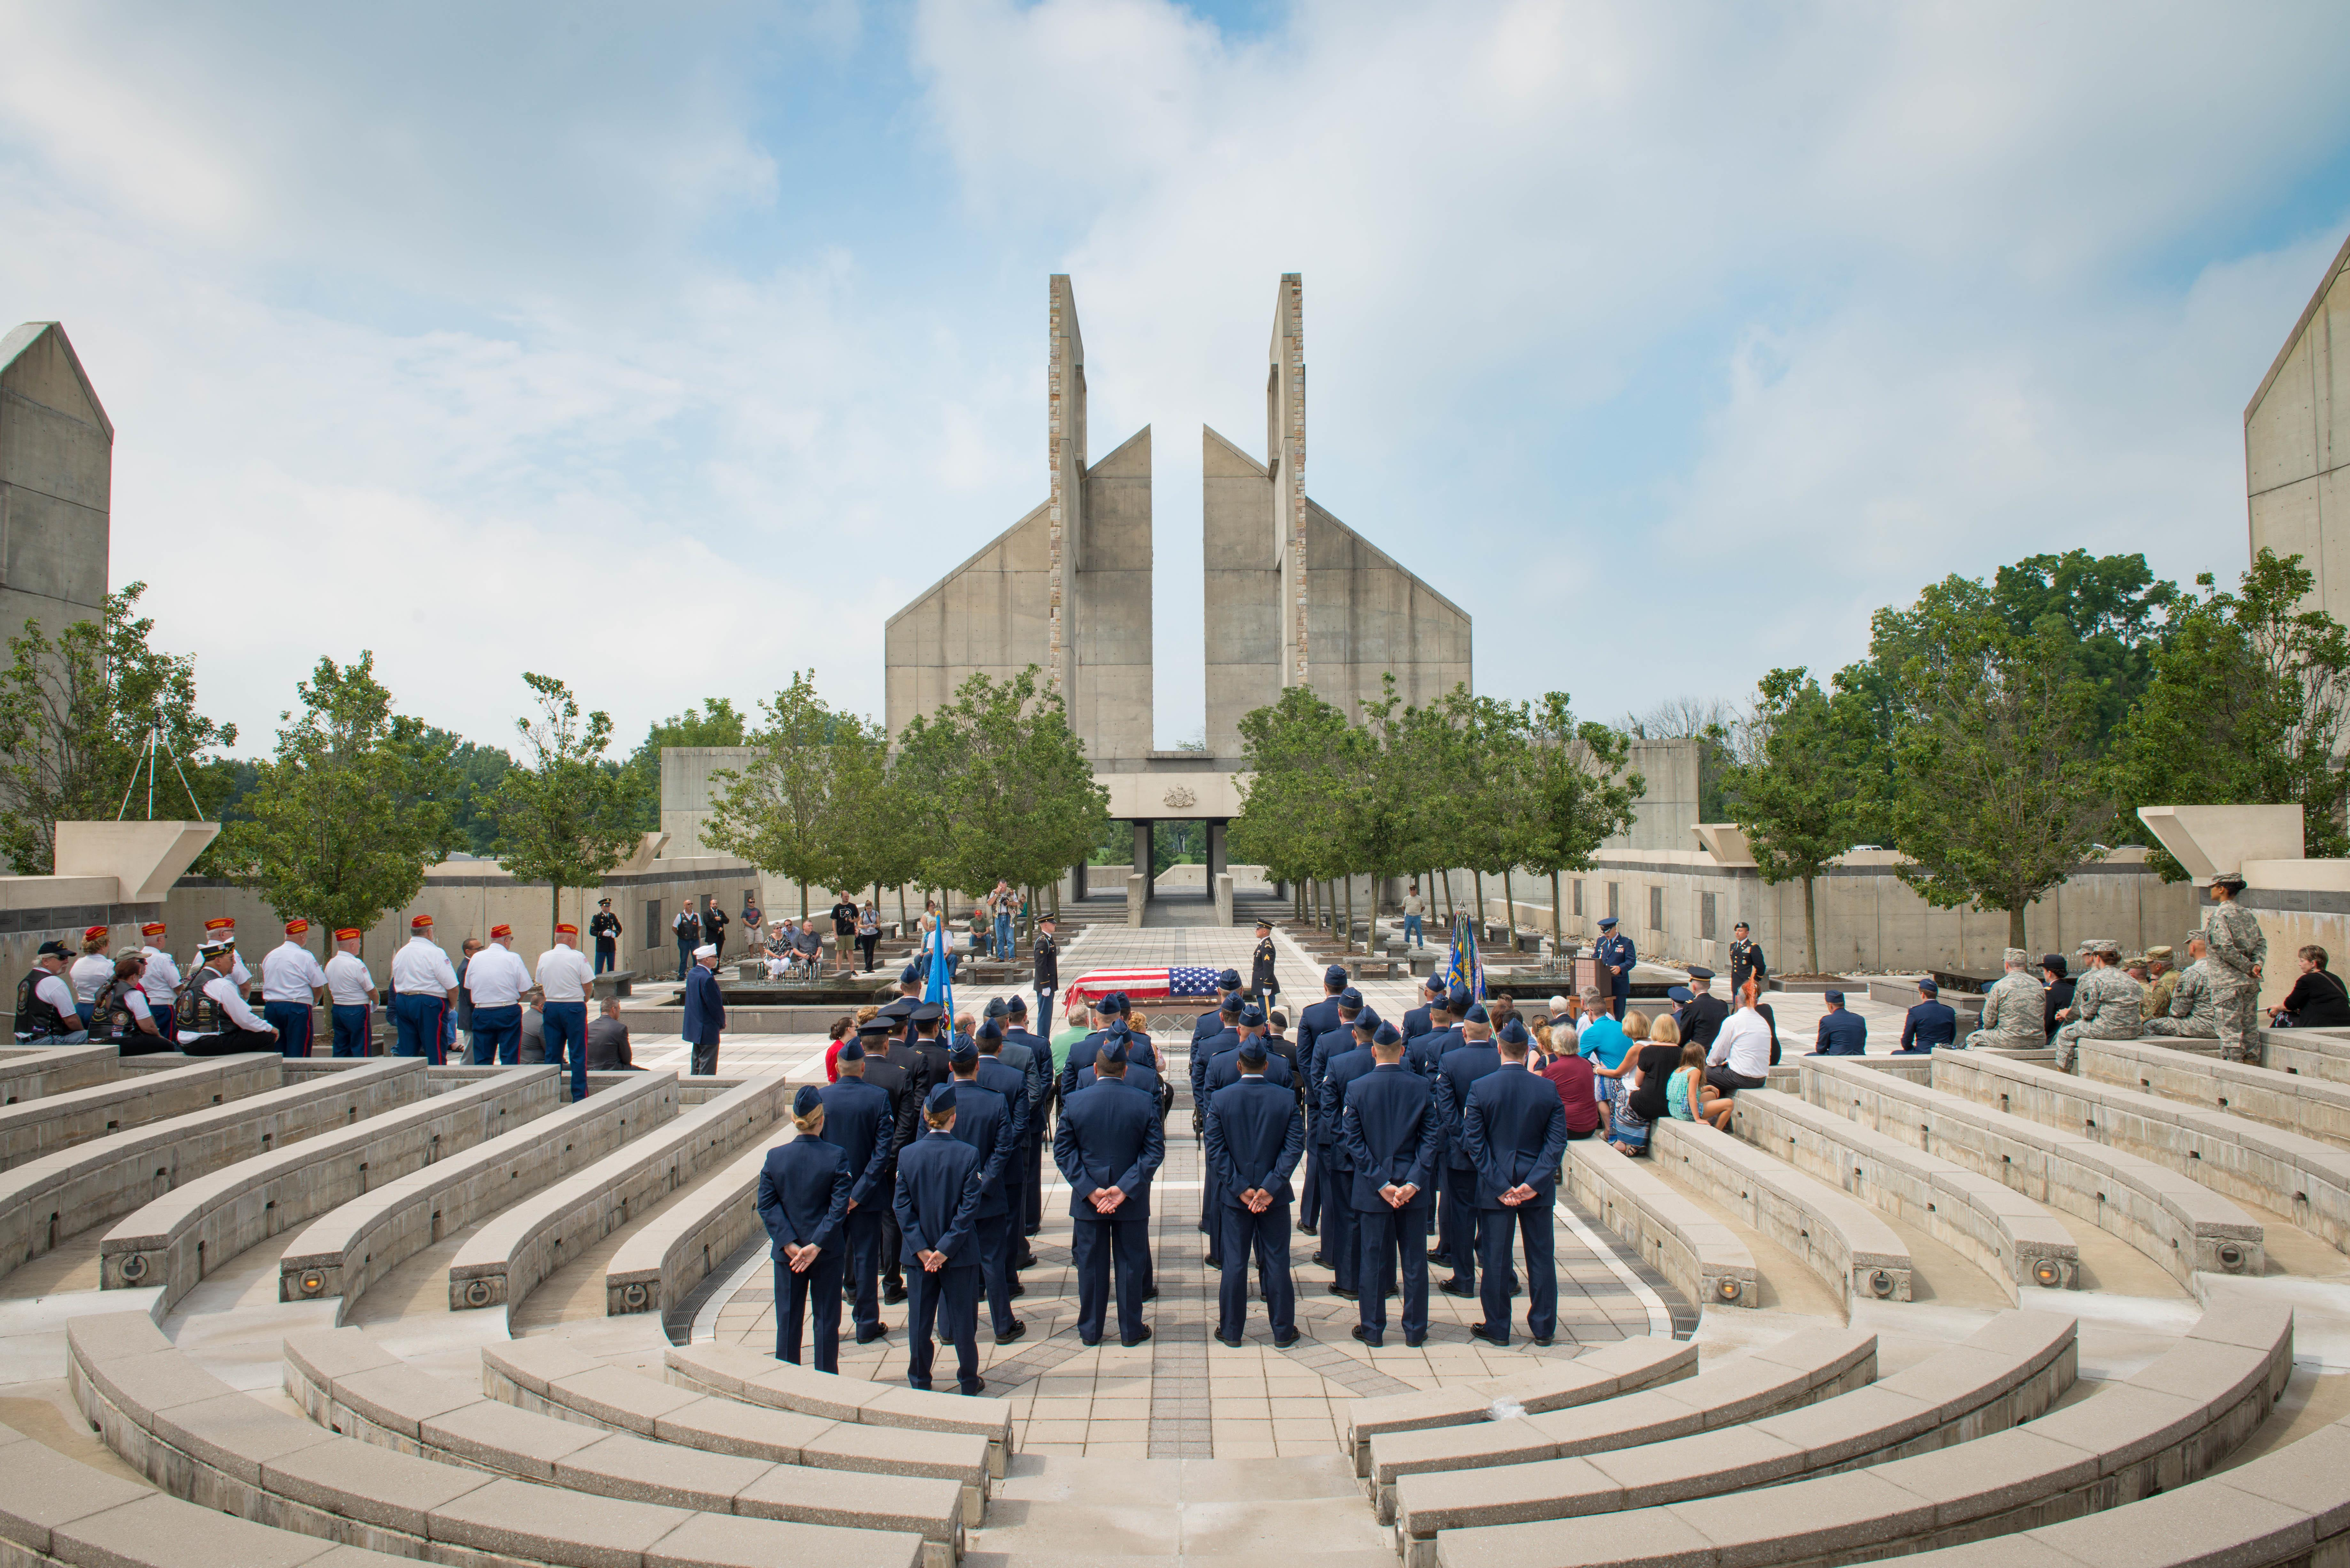 Airmen assigned to the 62nd Fighter Squadron stand in formation during the funeral service for 2nd Lt. Charles E. Carlson at the Indiantown Gap National Cemetery in Annville, Penn., Aug. 4, 2017. Approximately 50 Airmen traveled more than 2,000 miles to attend Carlson's funeral, who died during World War II after being shot down. (Staff Sgt. Jensen Stidham/Air Force)